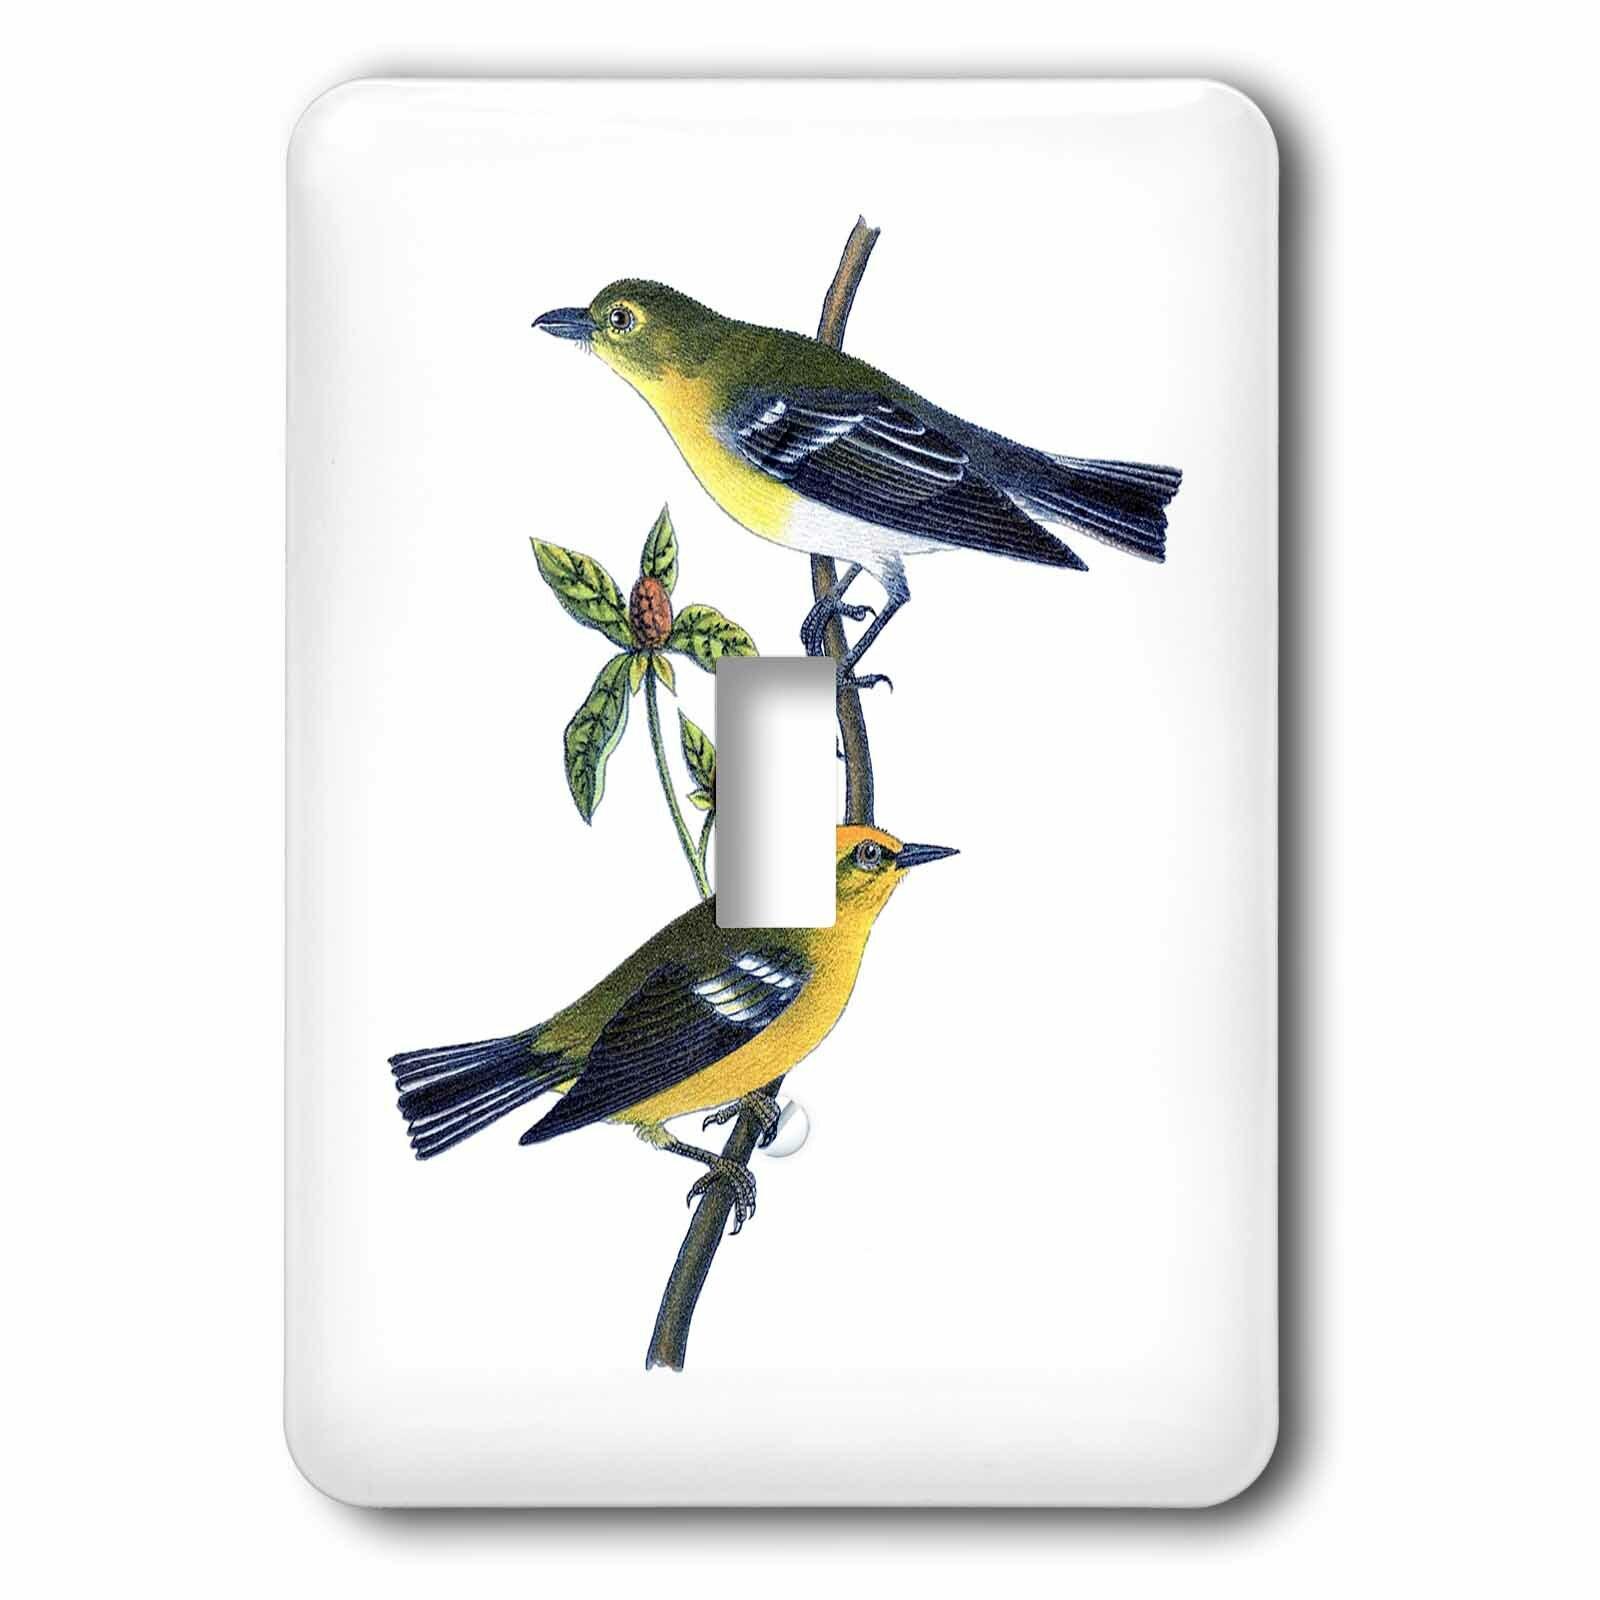 3drose Birds On Branch 1 Gang Toggle Light Switch Wall Plate Wayfair